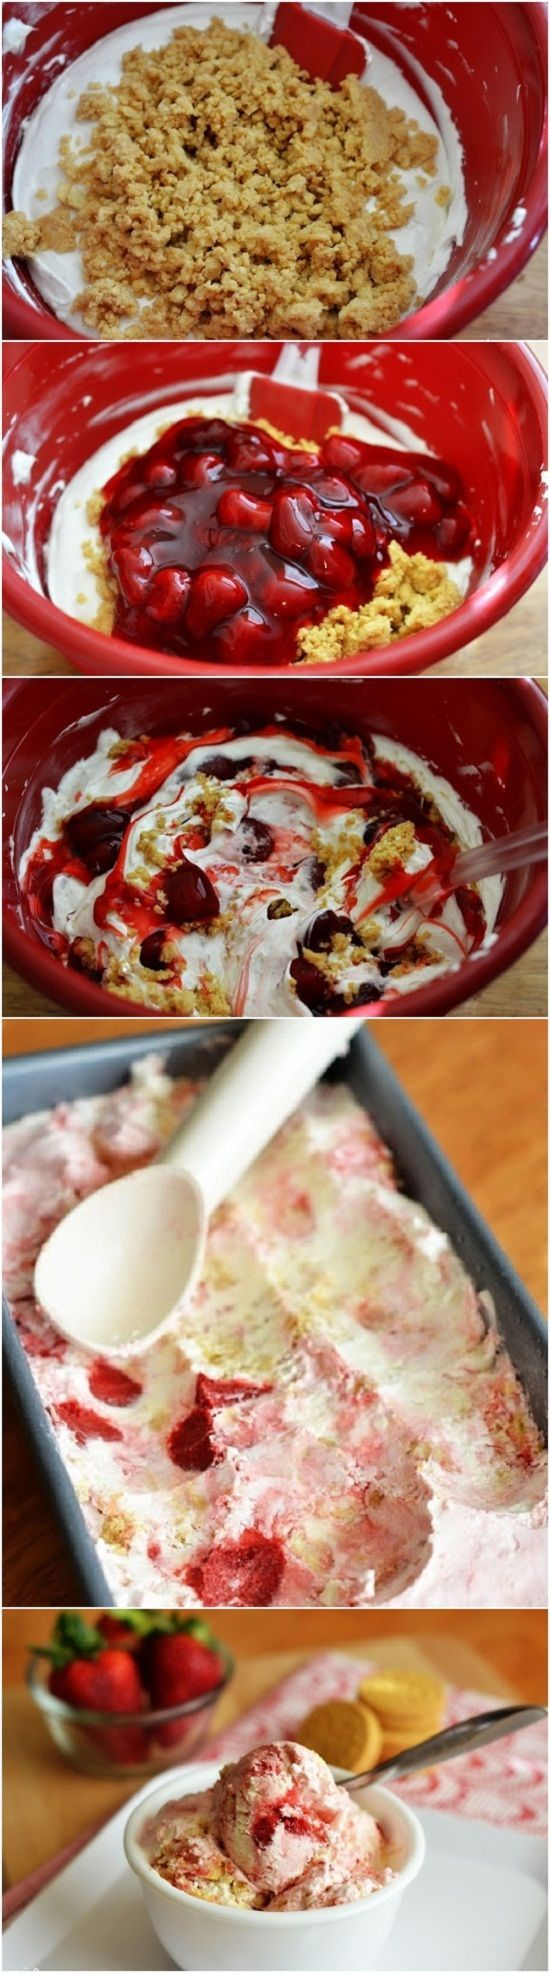 Easy Strawberry Cheesecake Ice Cream Recipe from Life in the Lofthouse -- Yes, but cherry or blueberry